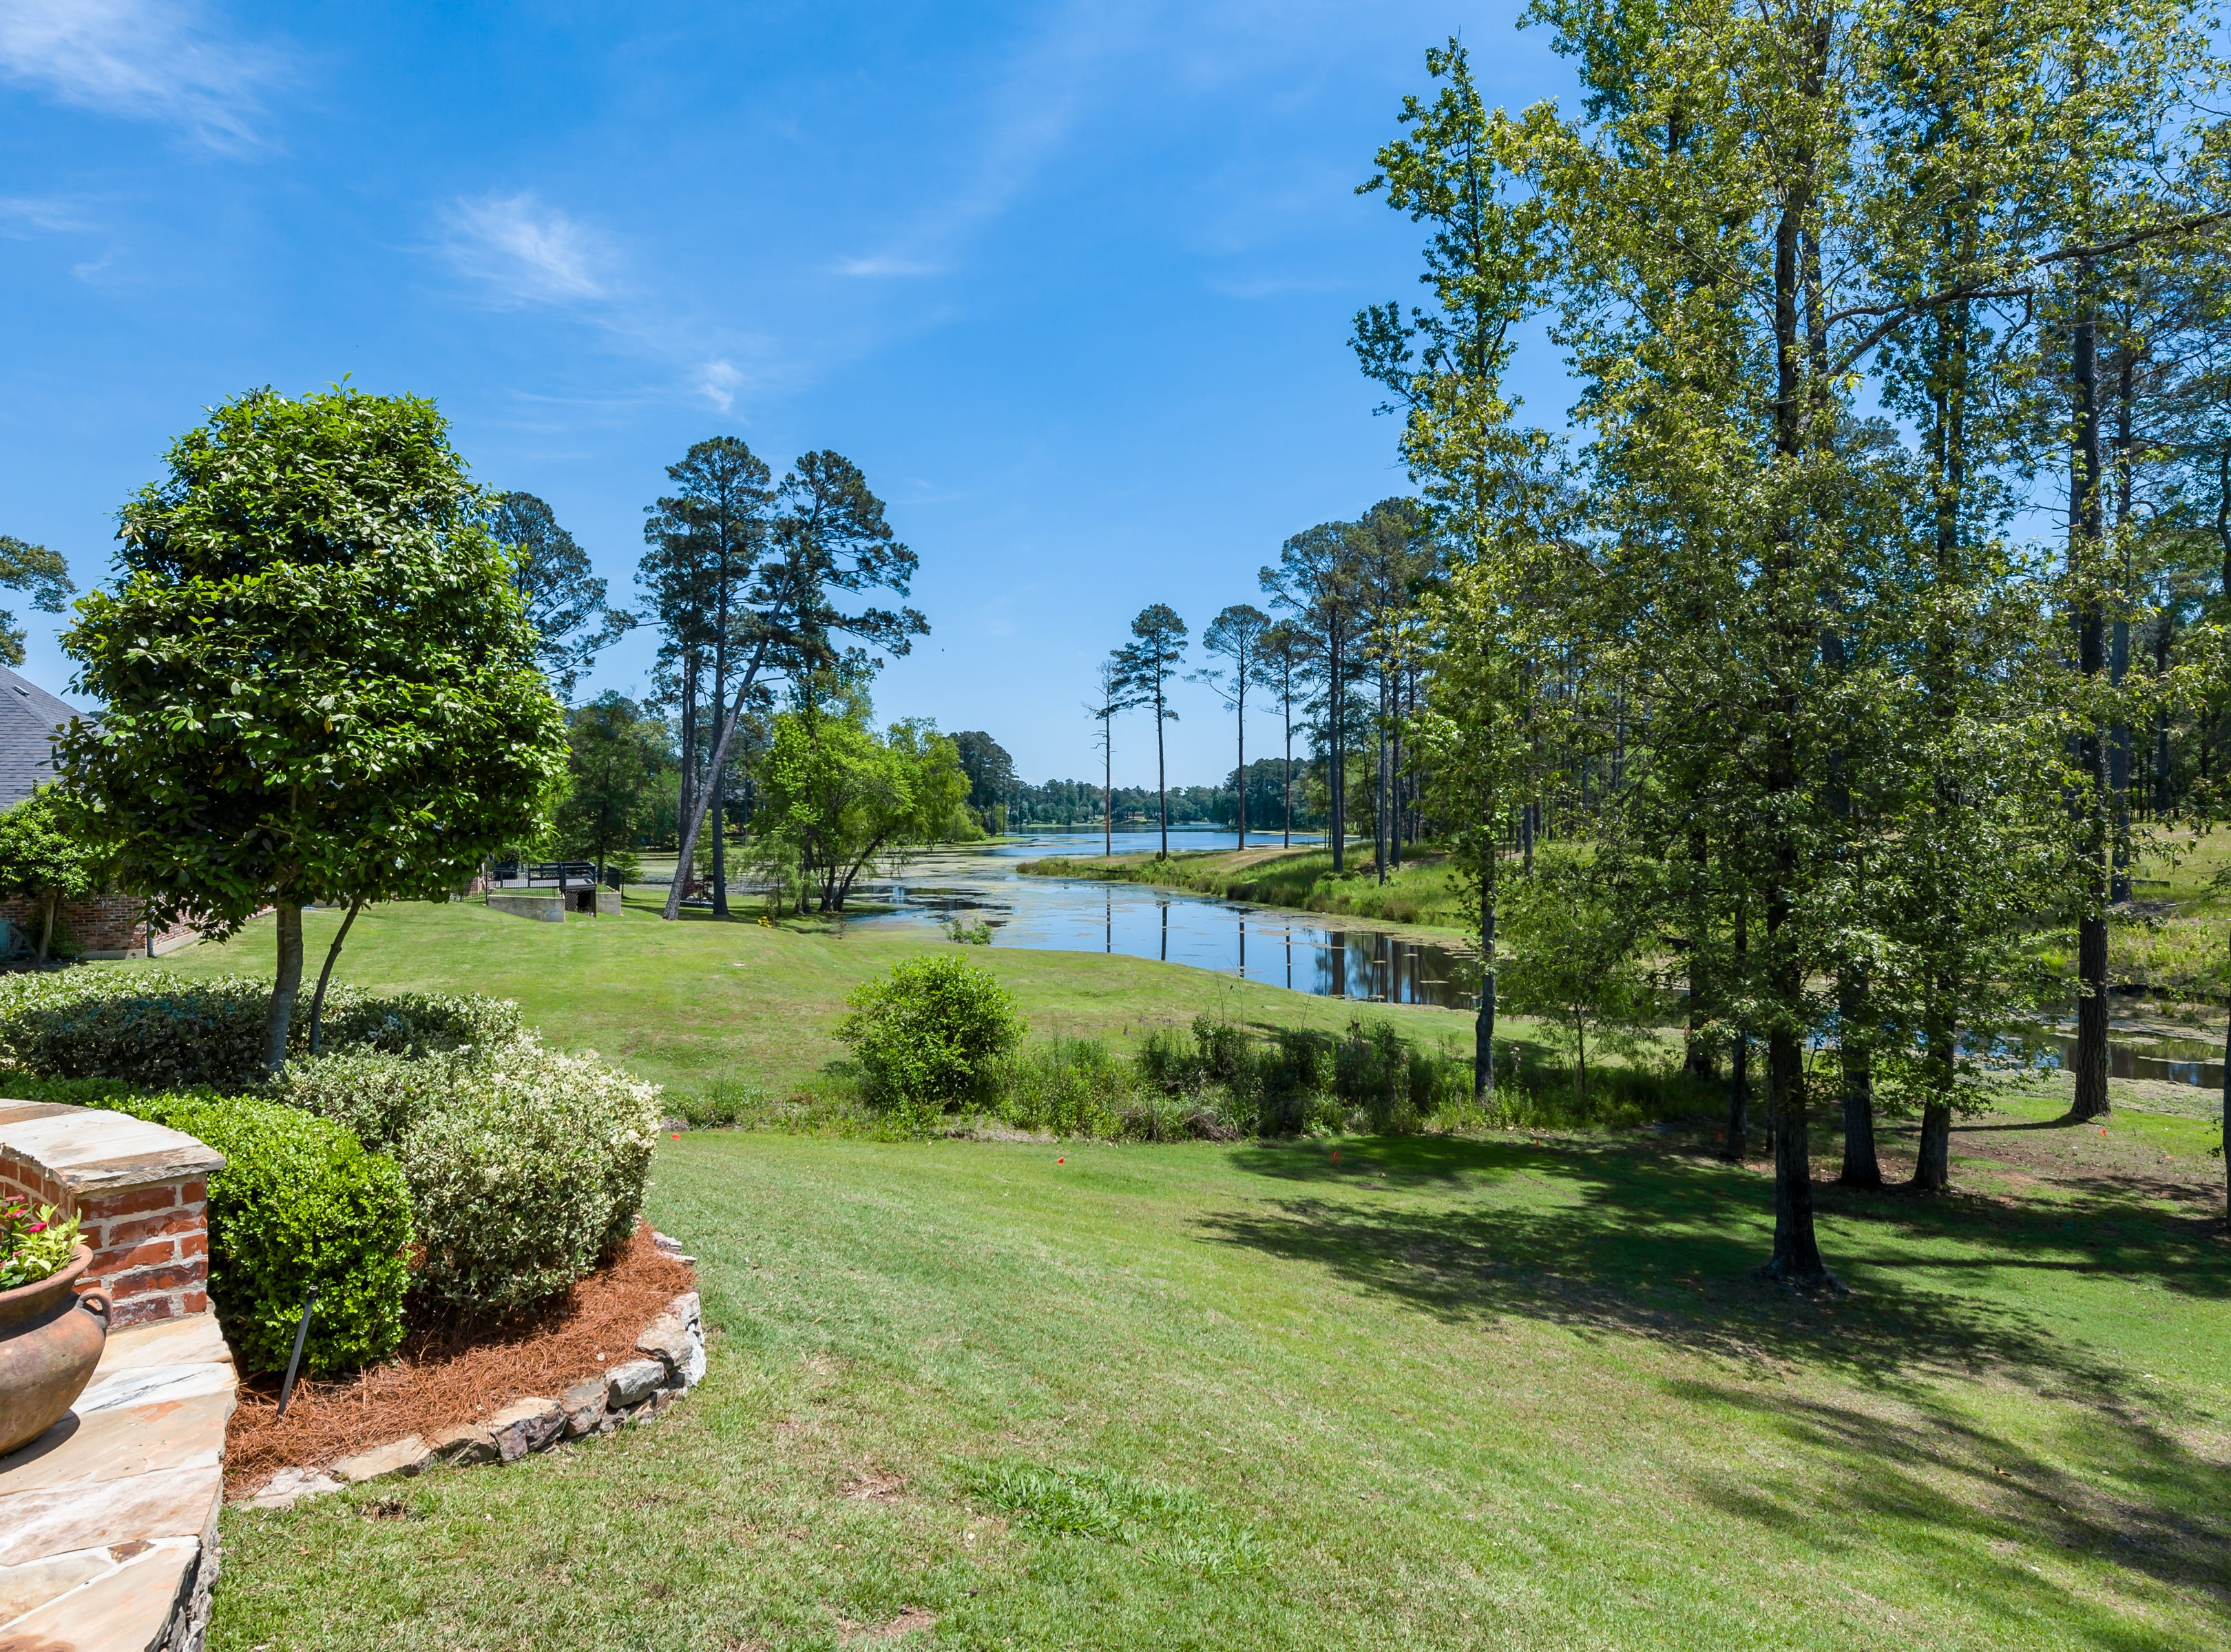 1003 West Pointe Circle, Shreveport  Price: $544,900  Details: 4 bedrooms, 3 bathrooms, 3,667 square feet  Features: Elegant home overlooking the lake in gated Long Lake Estates offers soothing lake views from the dining and living areas, gourmet kitchen, open breakfast area with hearth room, all bedrooms downstairs, amazing entertaining patio.  Contact: Denise Evans 218-0001